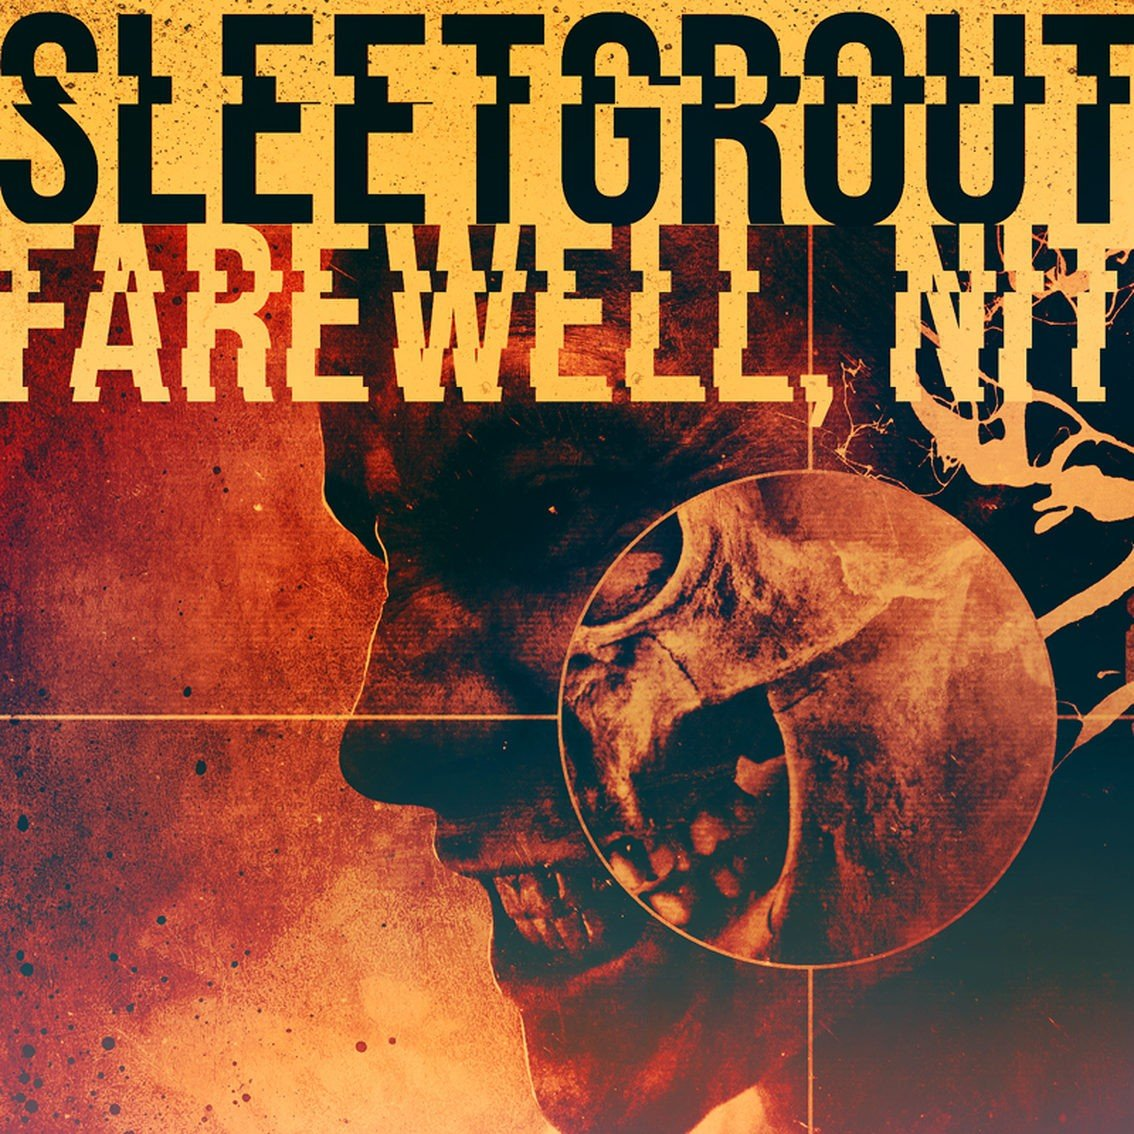 Russia's dark electro act Sleetgrout offers 5-track EP 'Farewell, Nit!' for free download